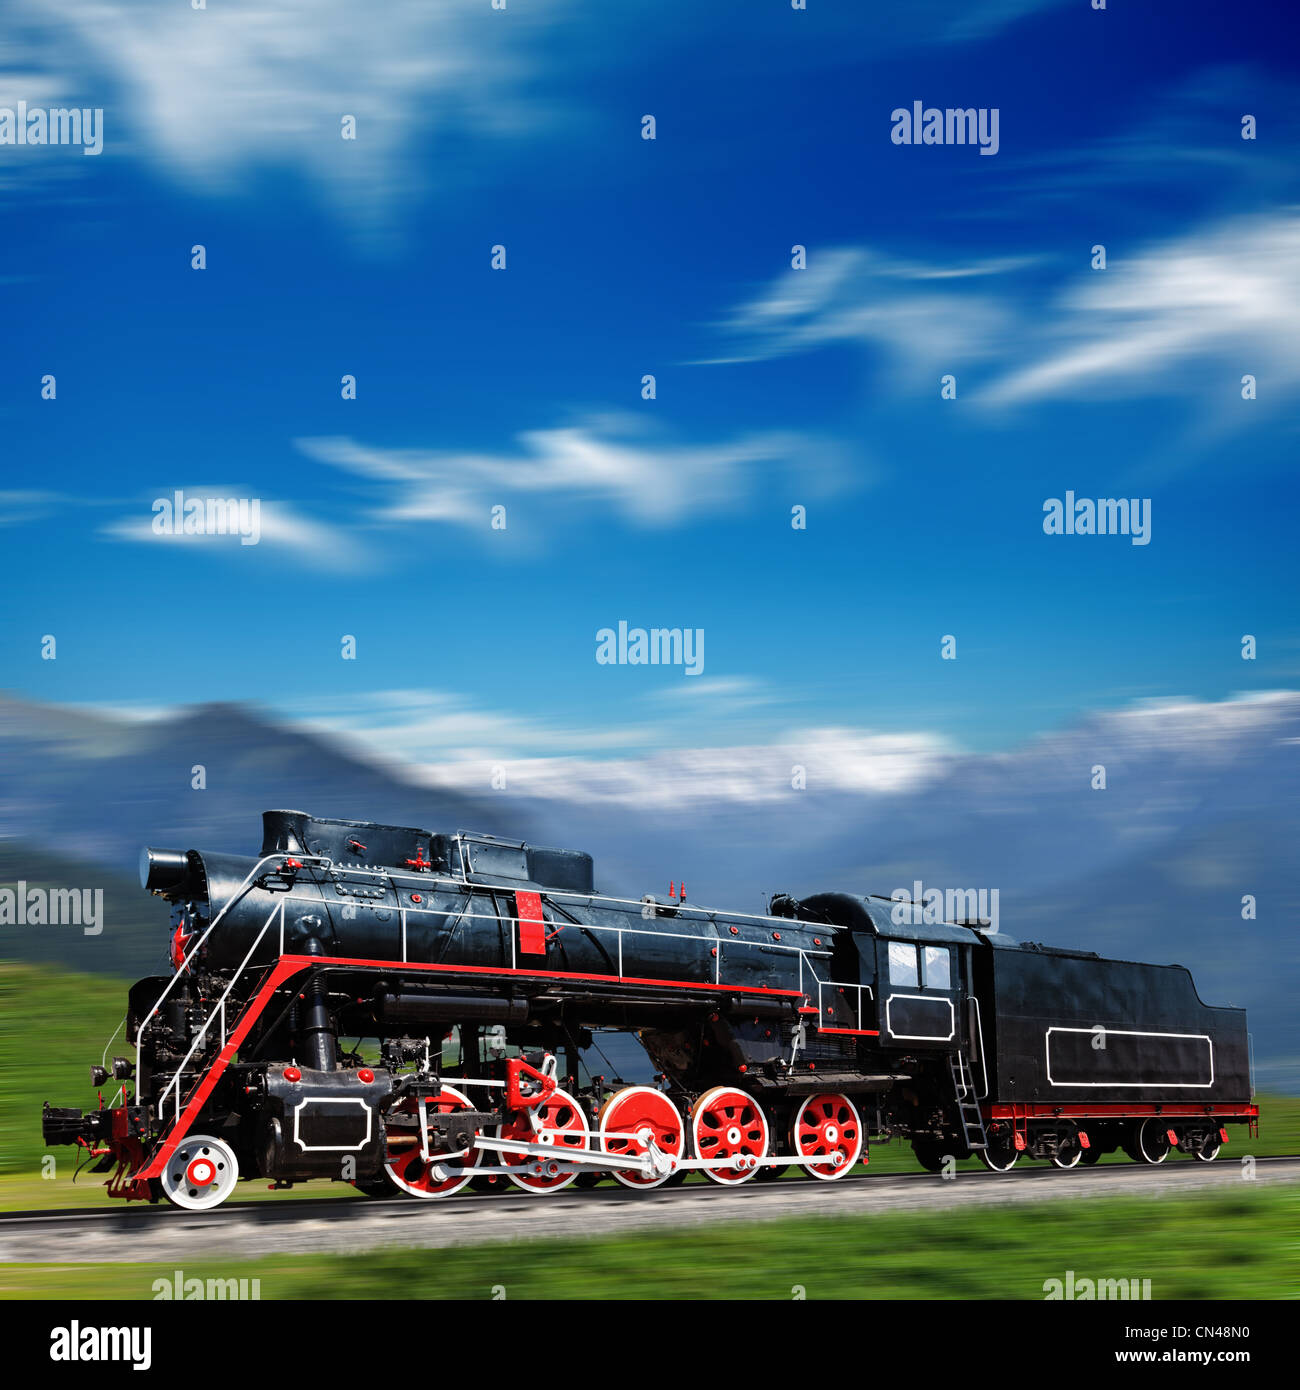 Speeding old locomotive in mountains - Stock Image